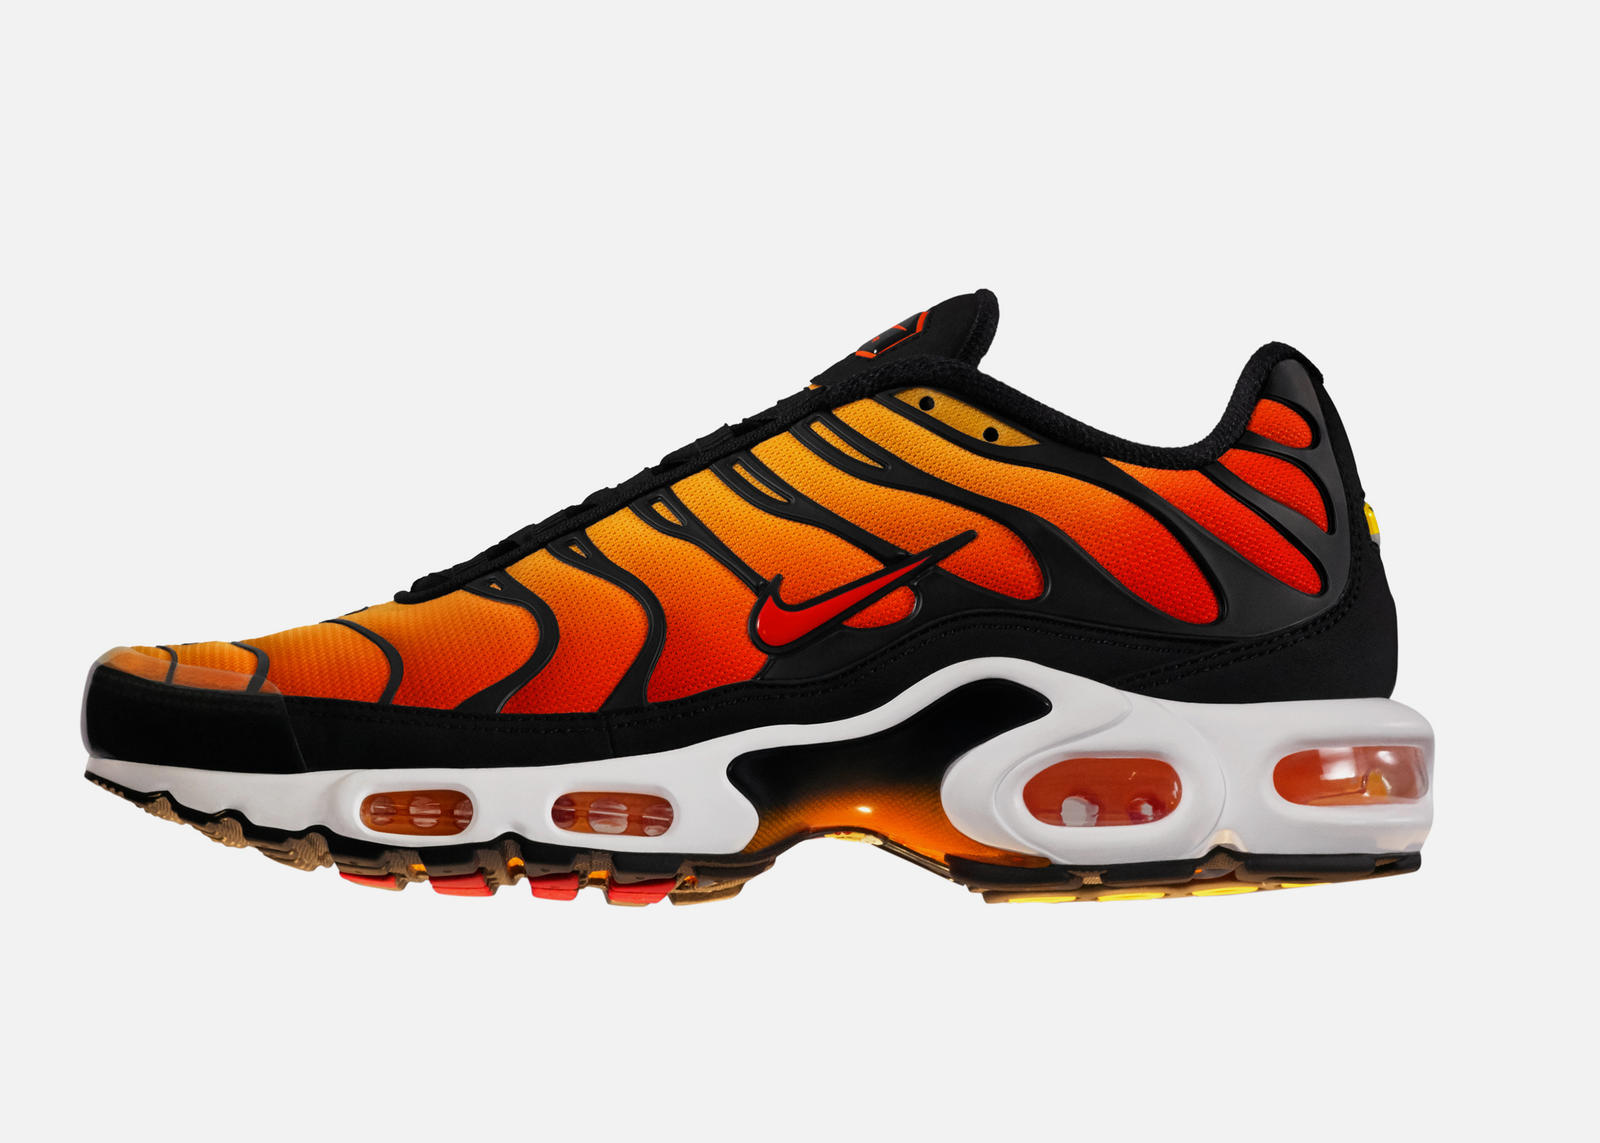 056f9943b34d The Untold Story of the Nike Air Max Plus 19